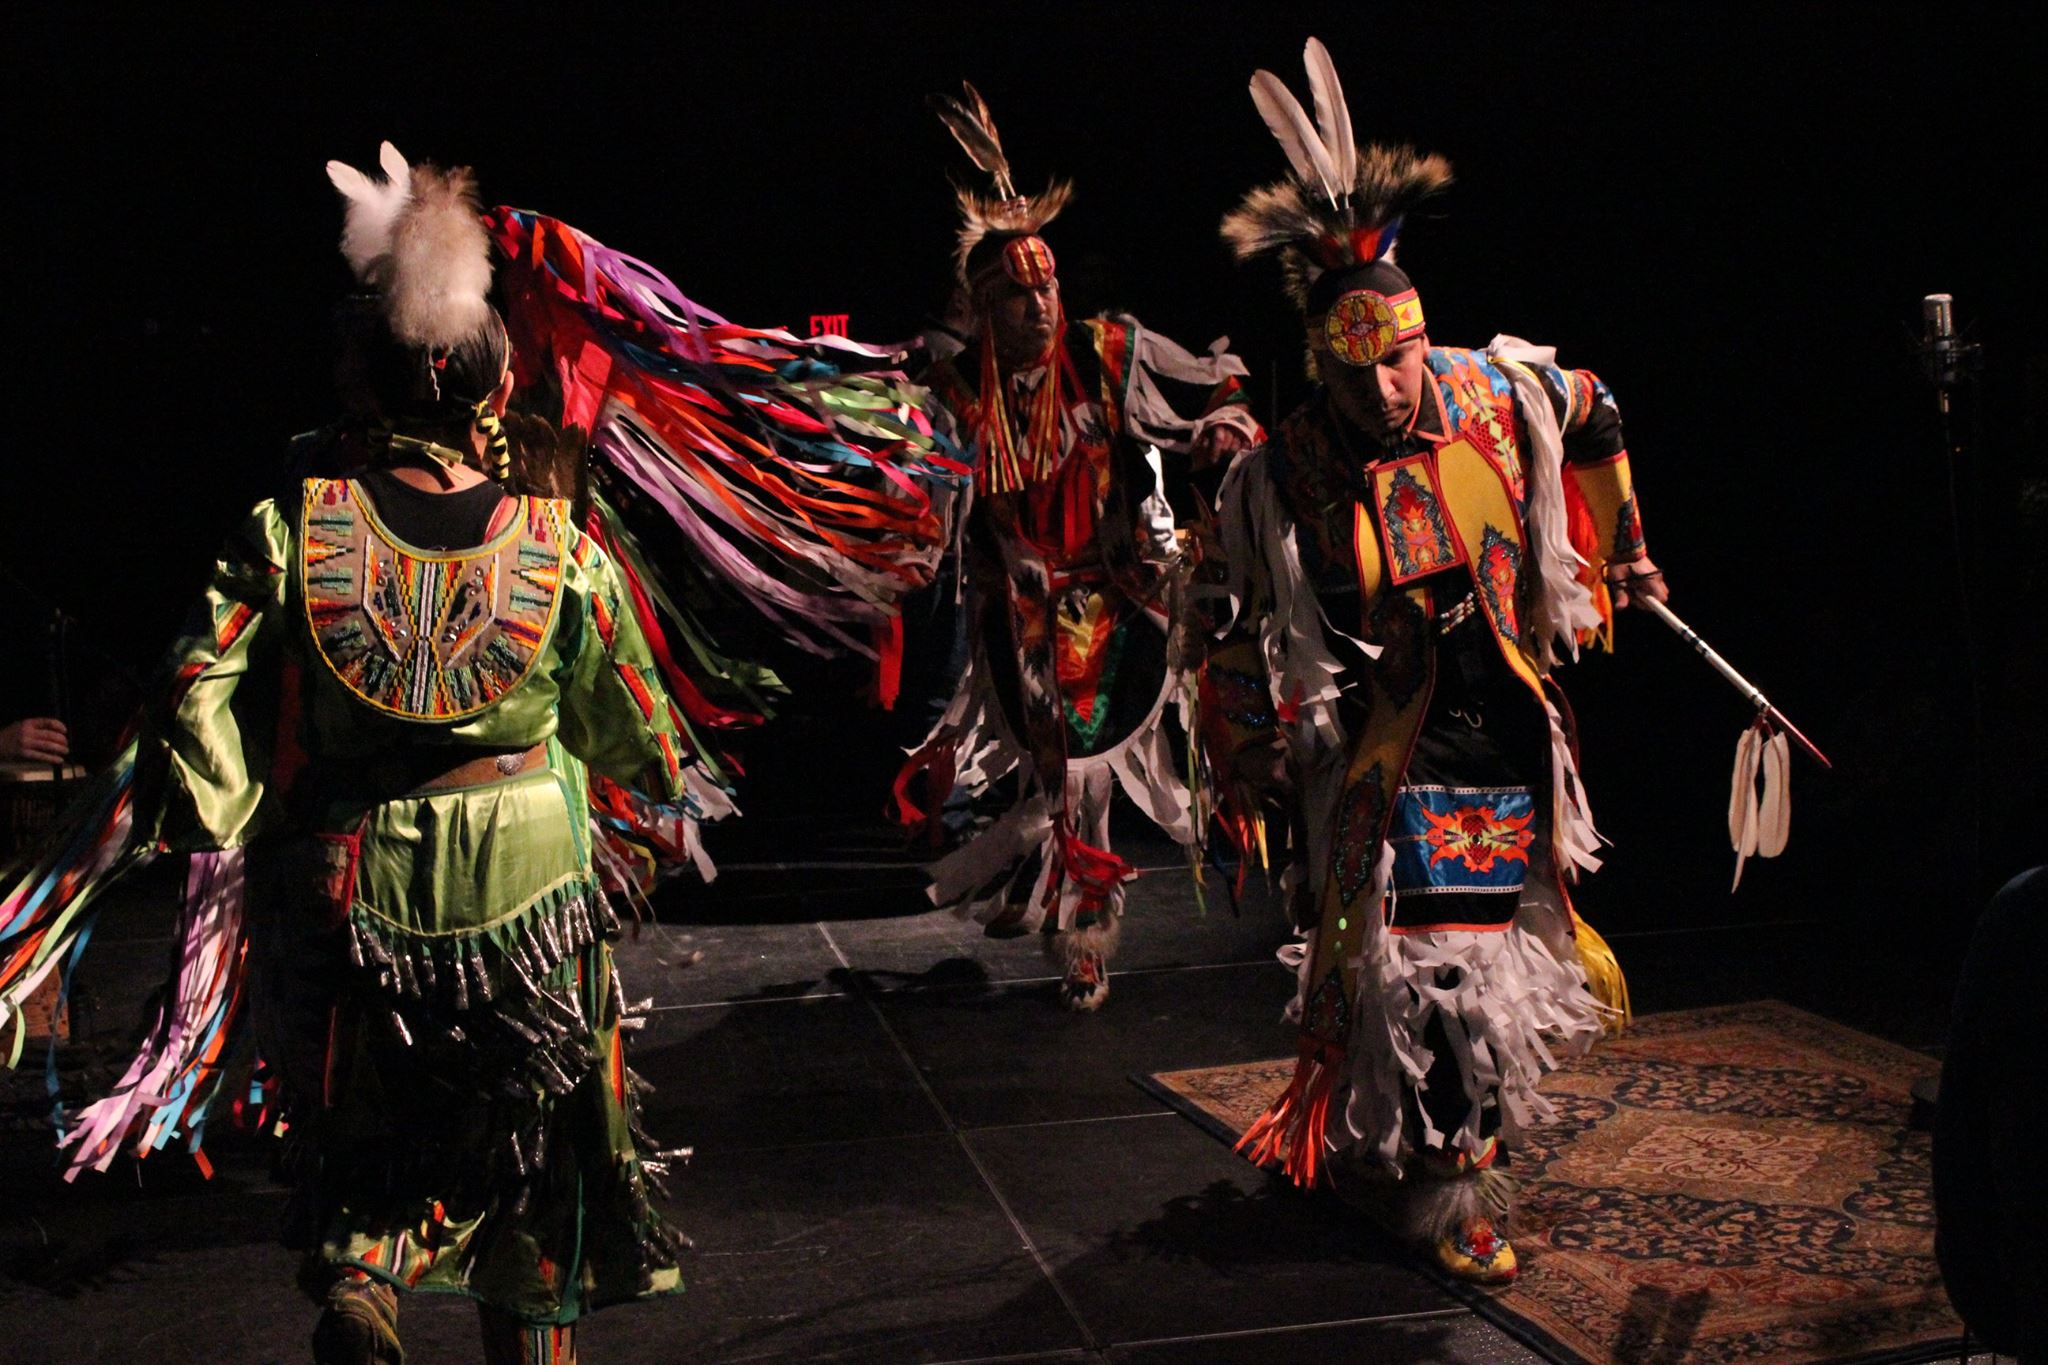 The Northbird Singers perform at the Dec. 6, 2014 Great Northern Radio Show in Walker, Minnesota. The Northbird Singers will be among the performers at the Bemijigamaag Powwow, Saturday, April 4, 2015 at the Sanford Center in Bemidji.